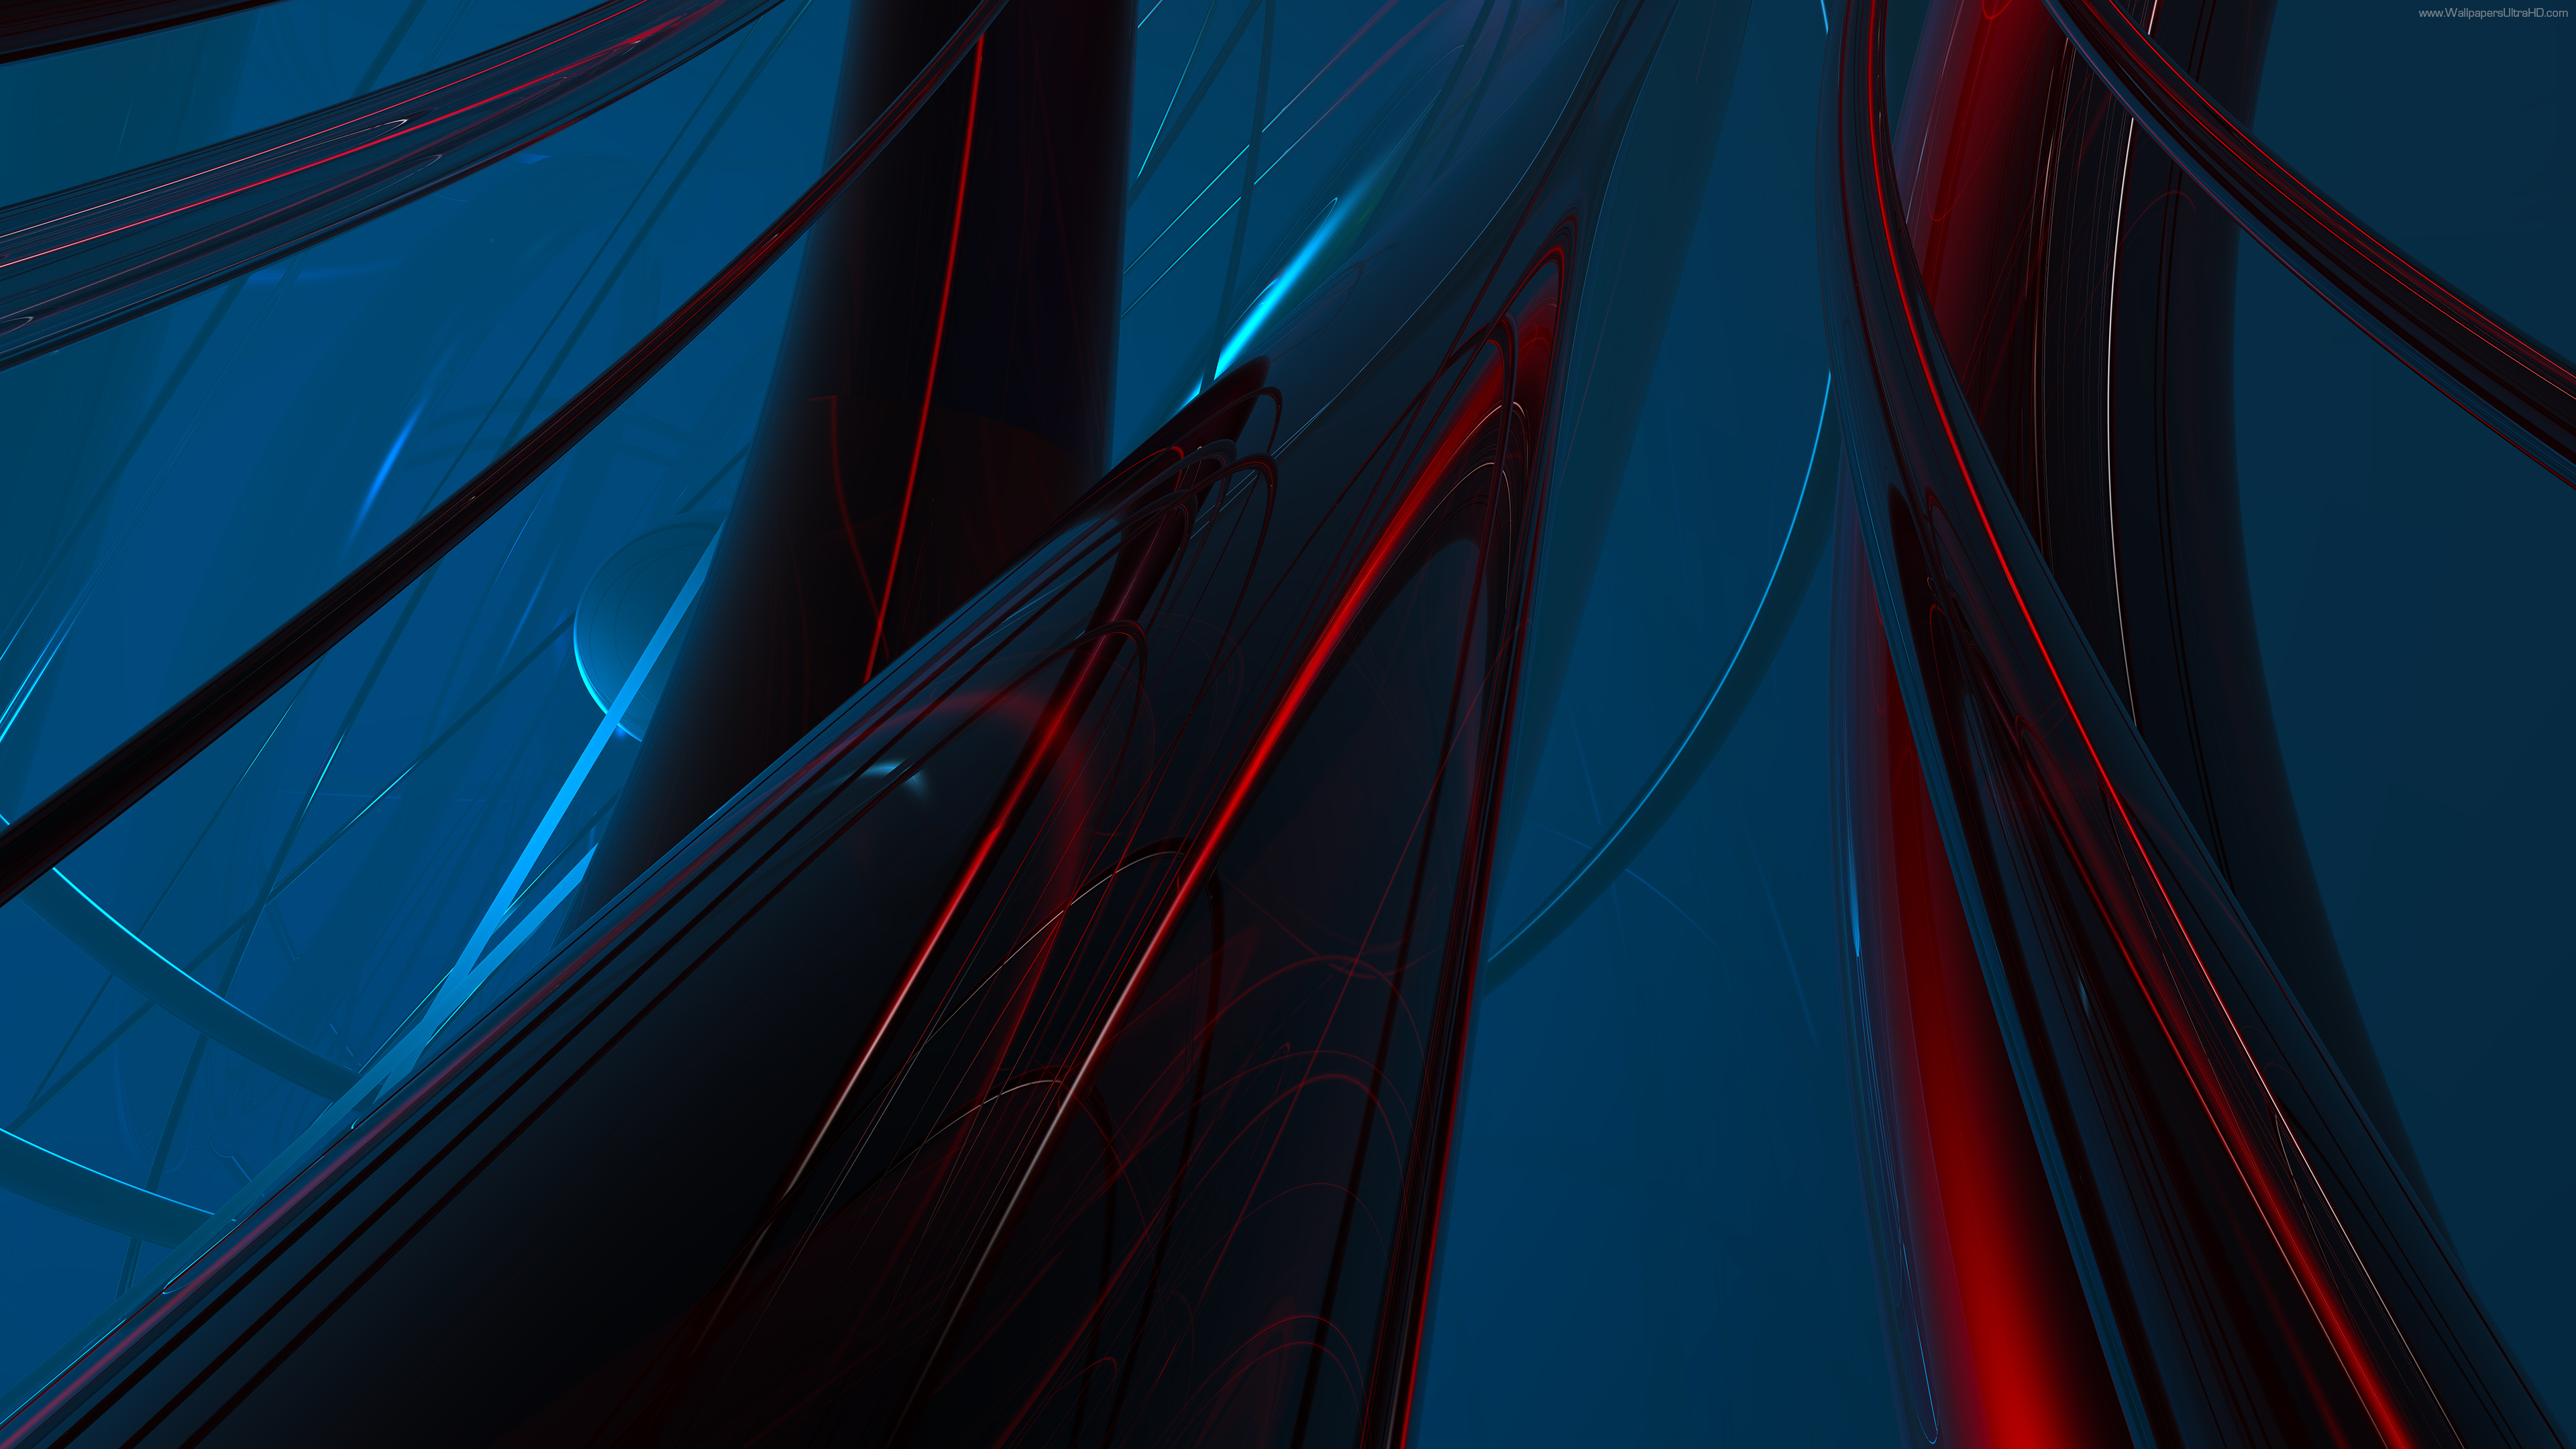 UHD Abstract Red Blue Green Wallpaper